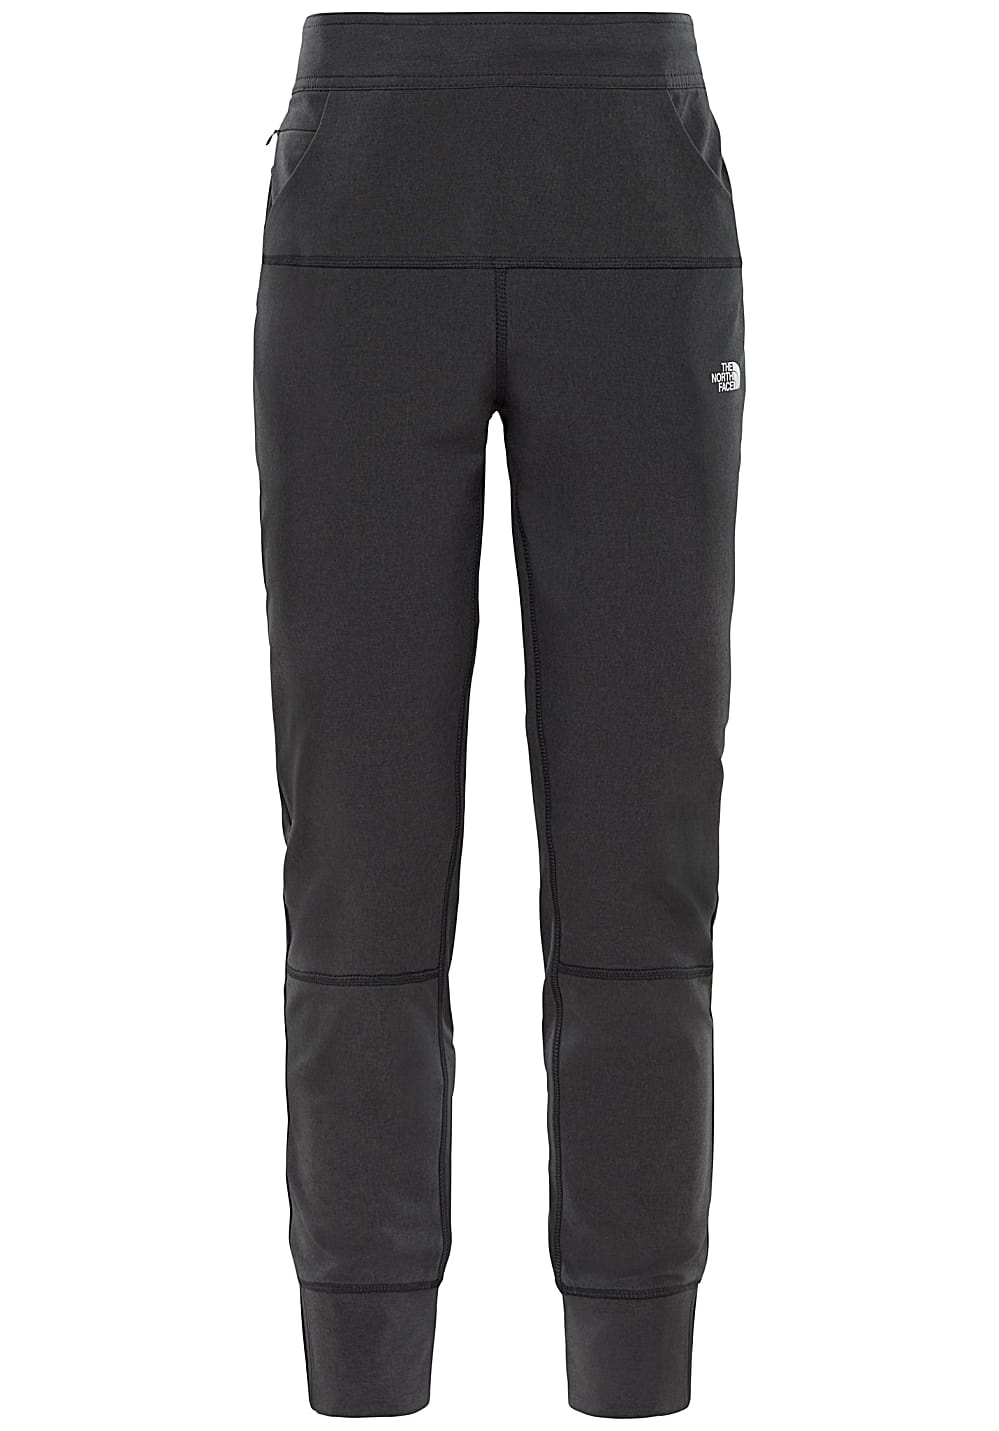 7bdadd59b THE NORTH FACE Hikesteller Winter - Outdoor Pants for Women - Black